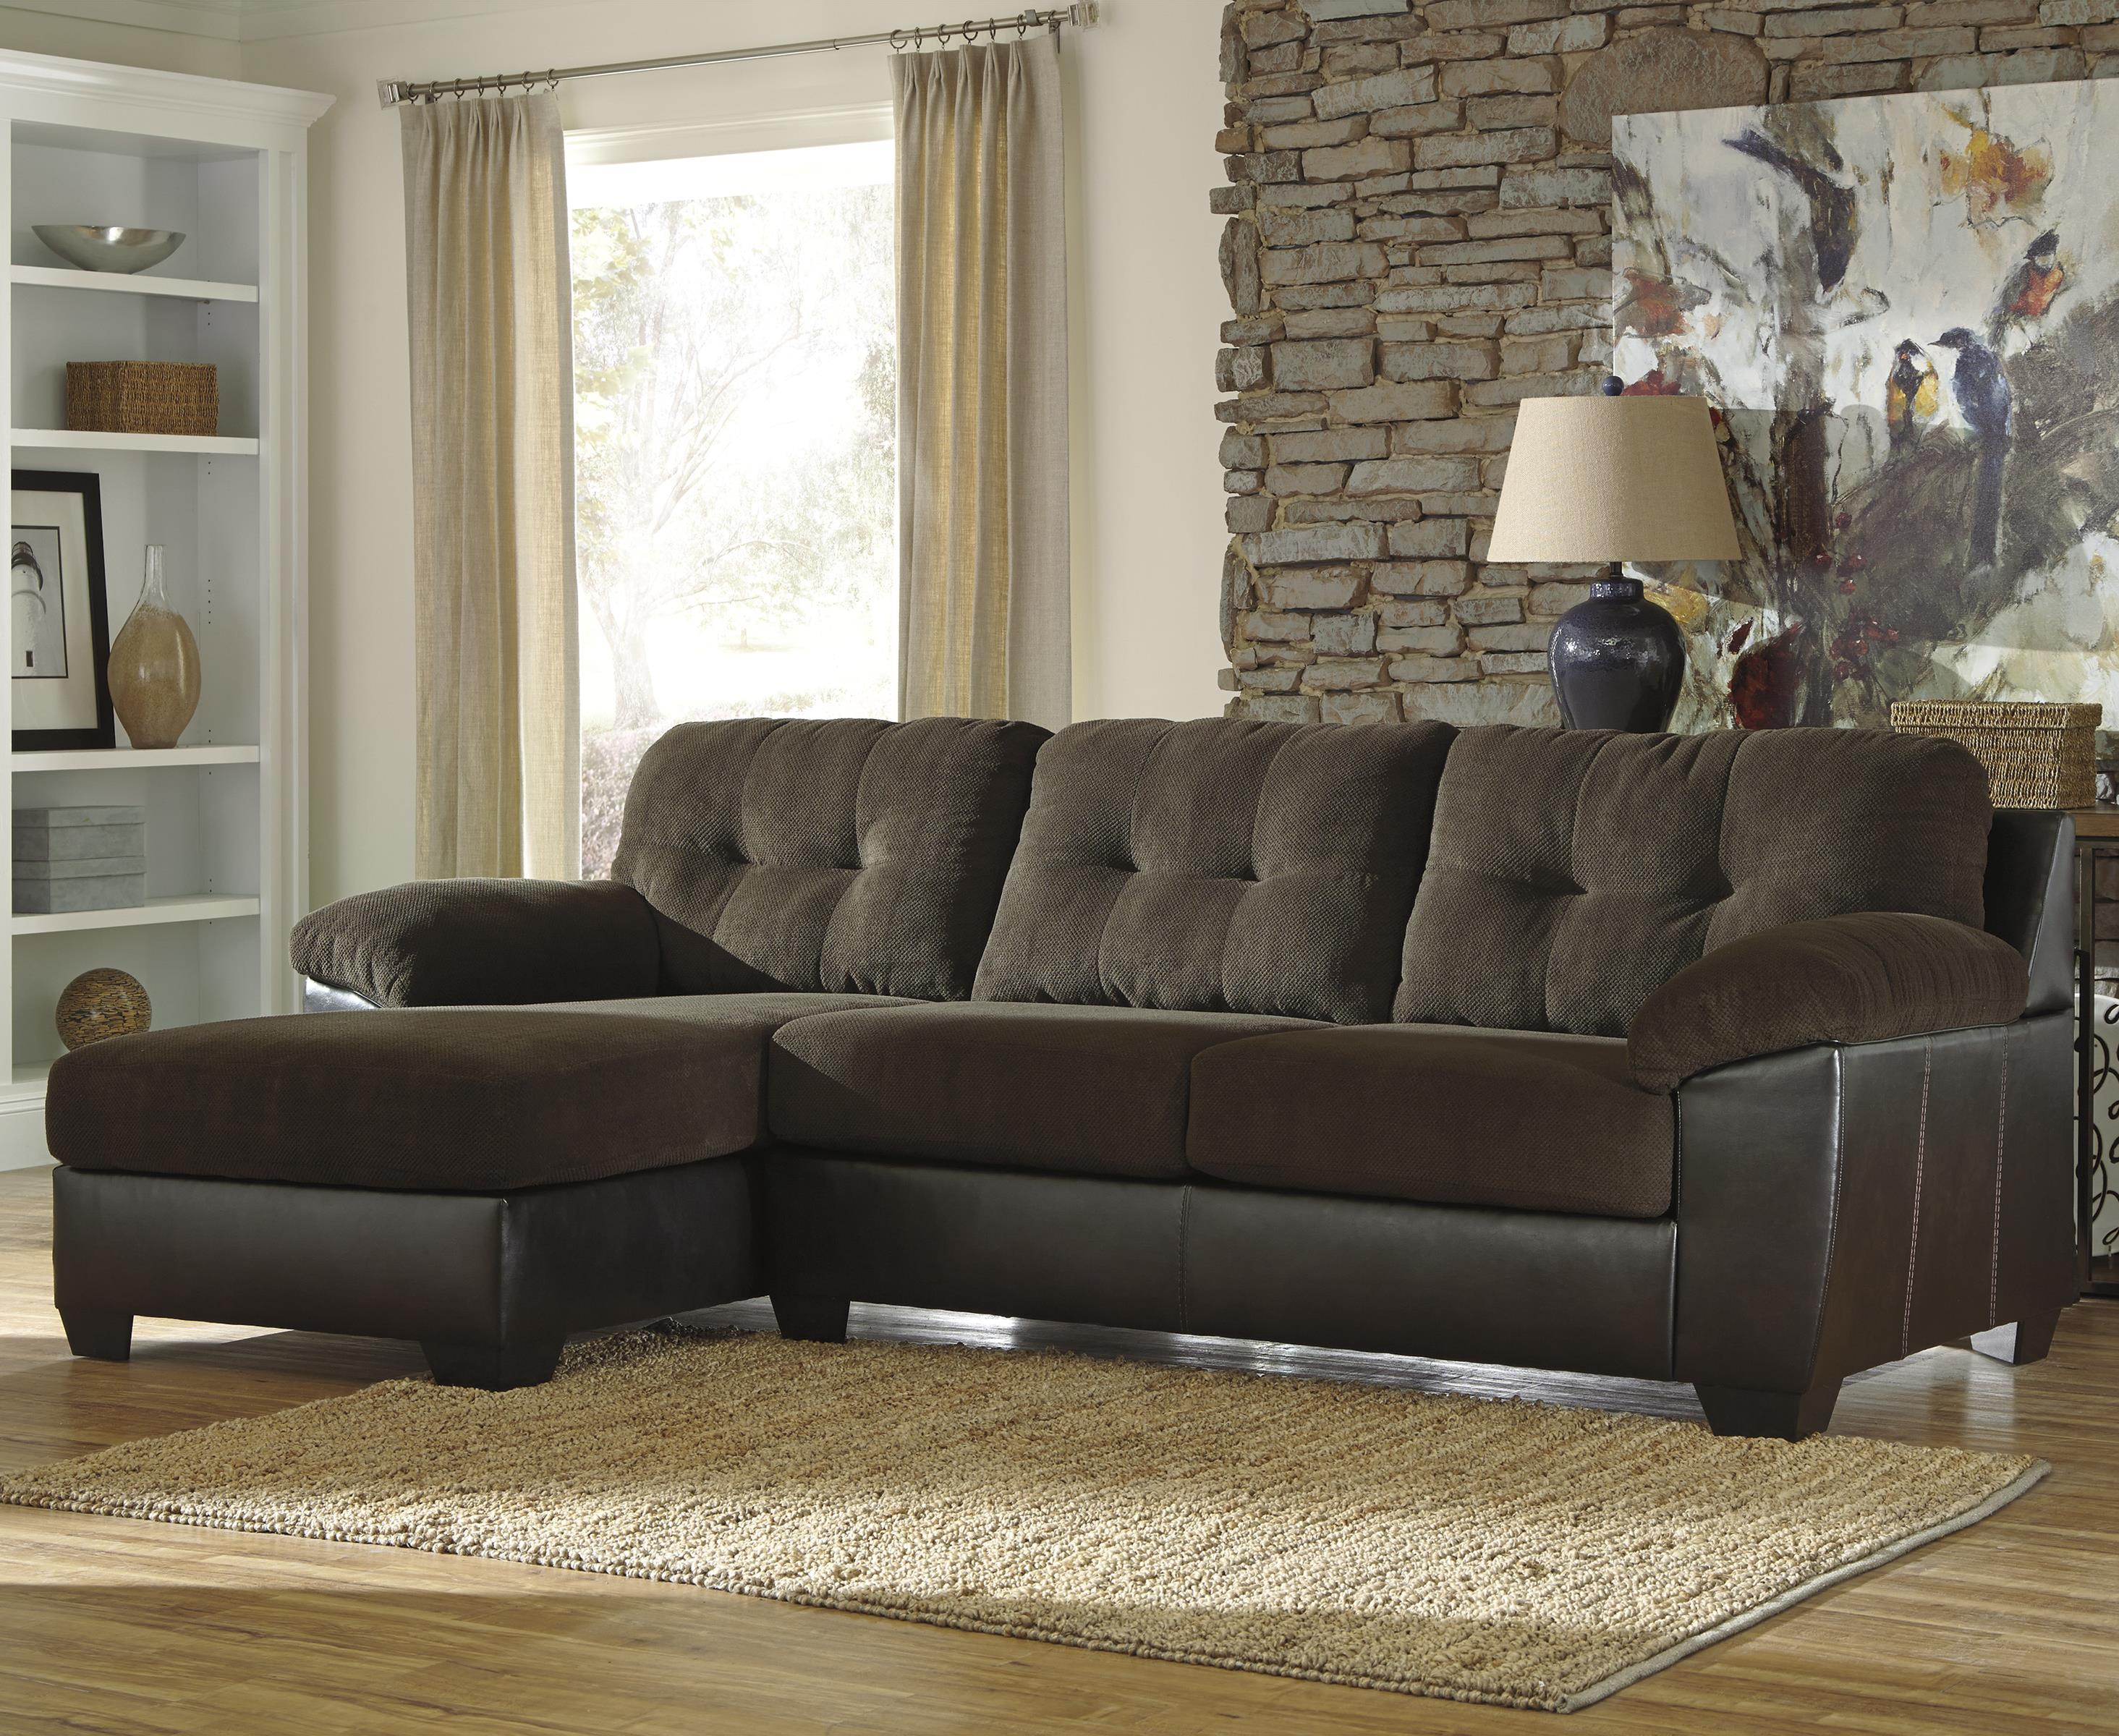 Benchcraft Vanleer 2-Piece Sectional with Left Chaise - Item Number: 1590016+67